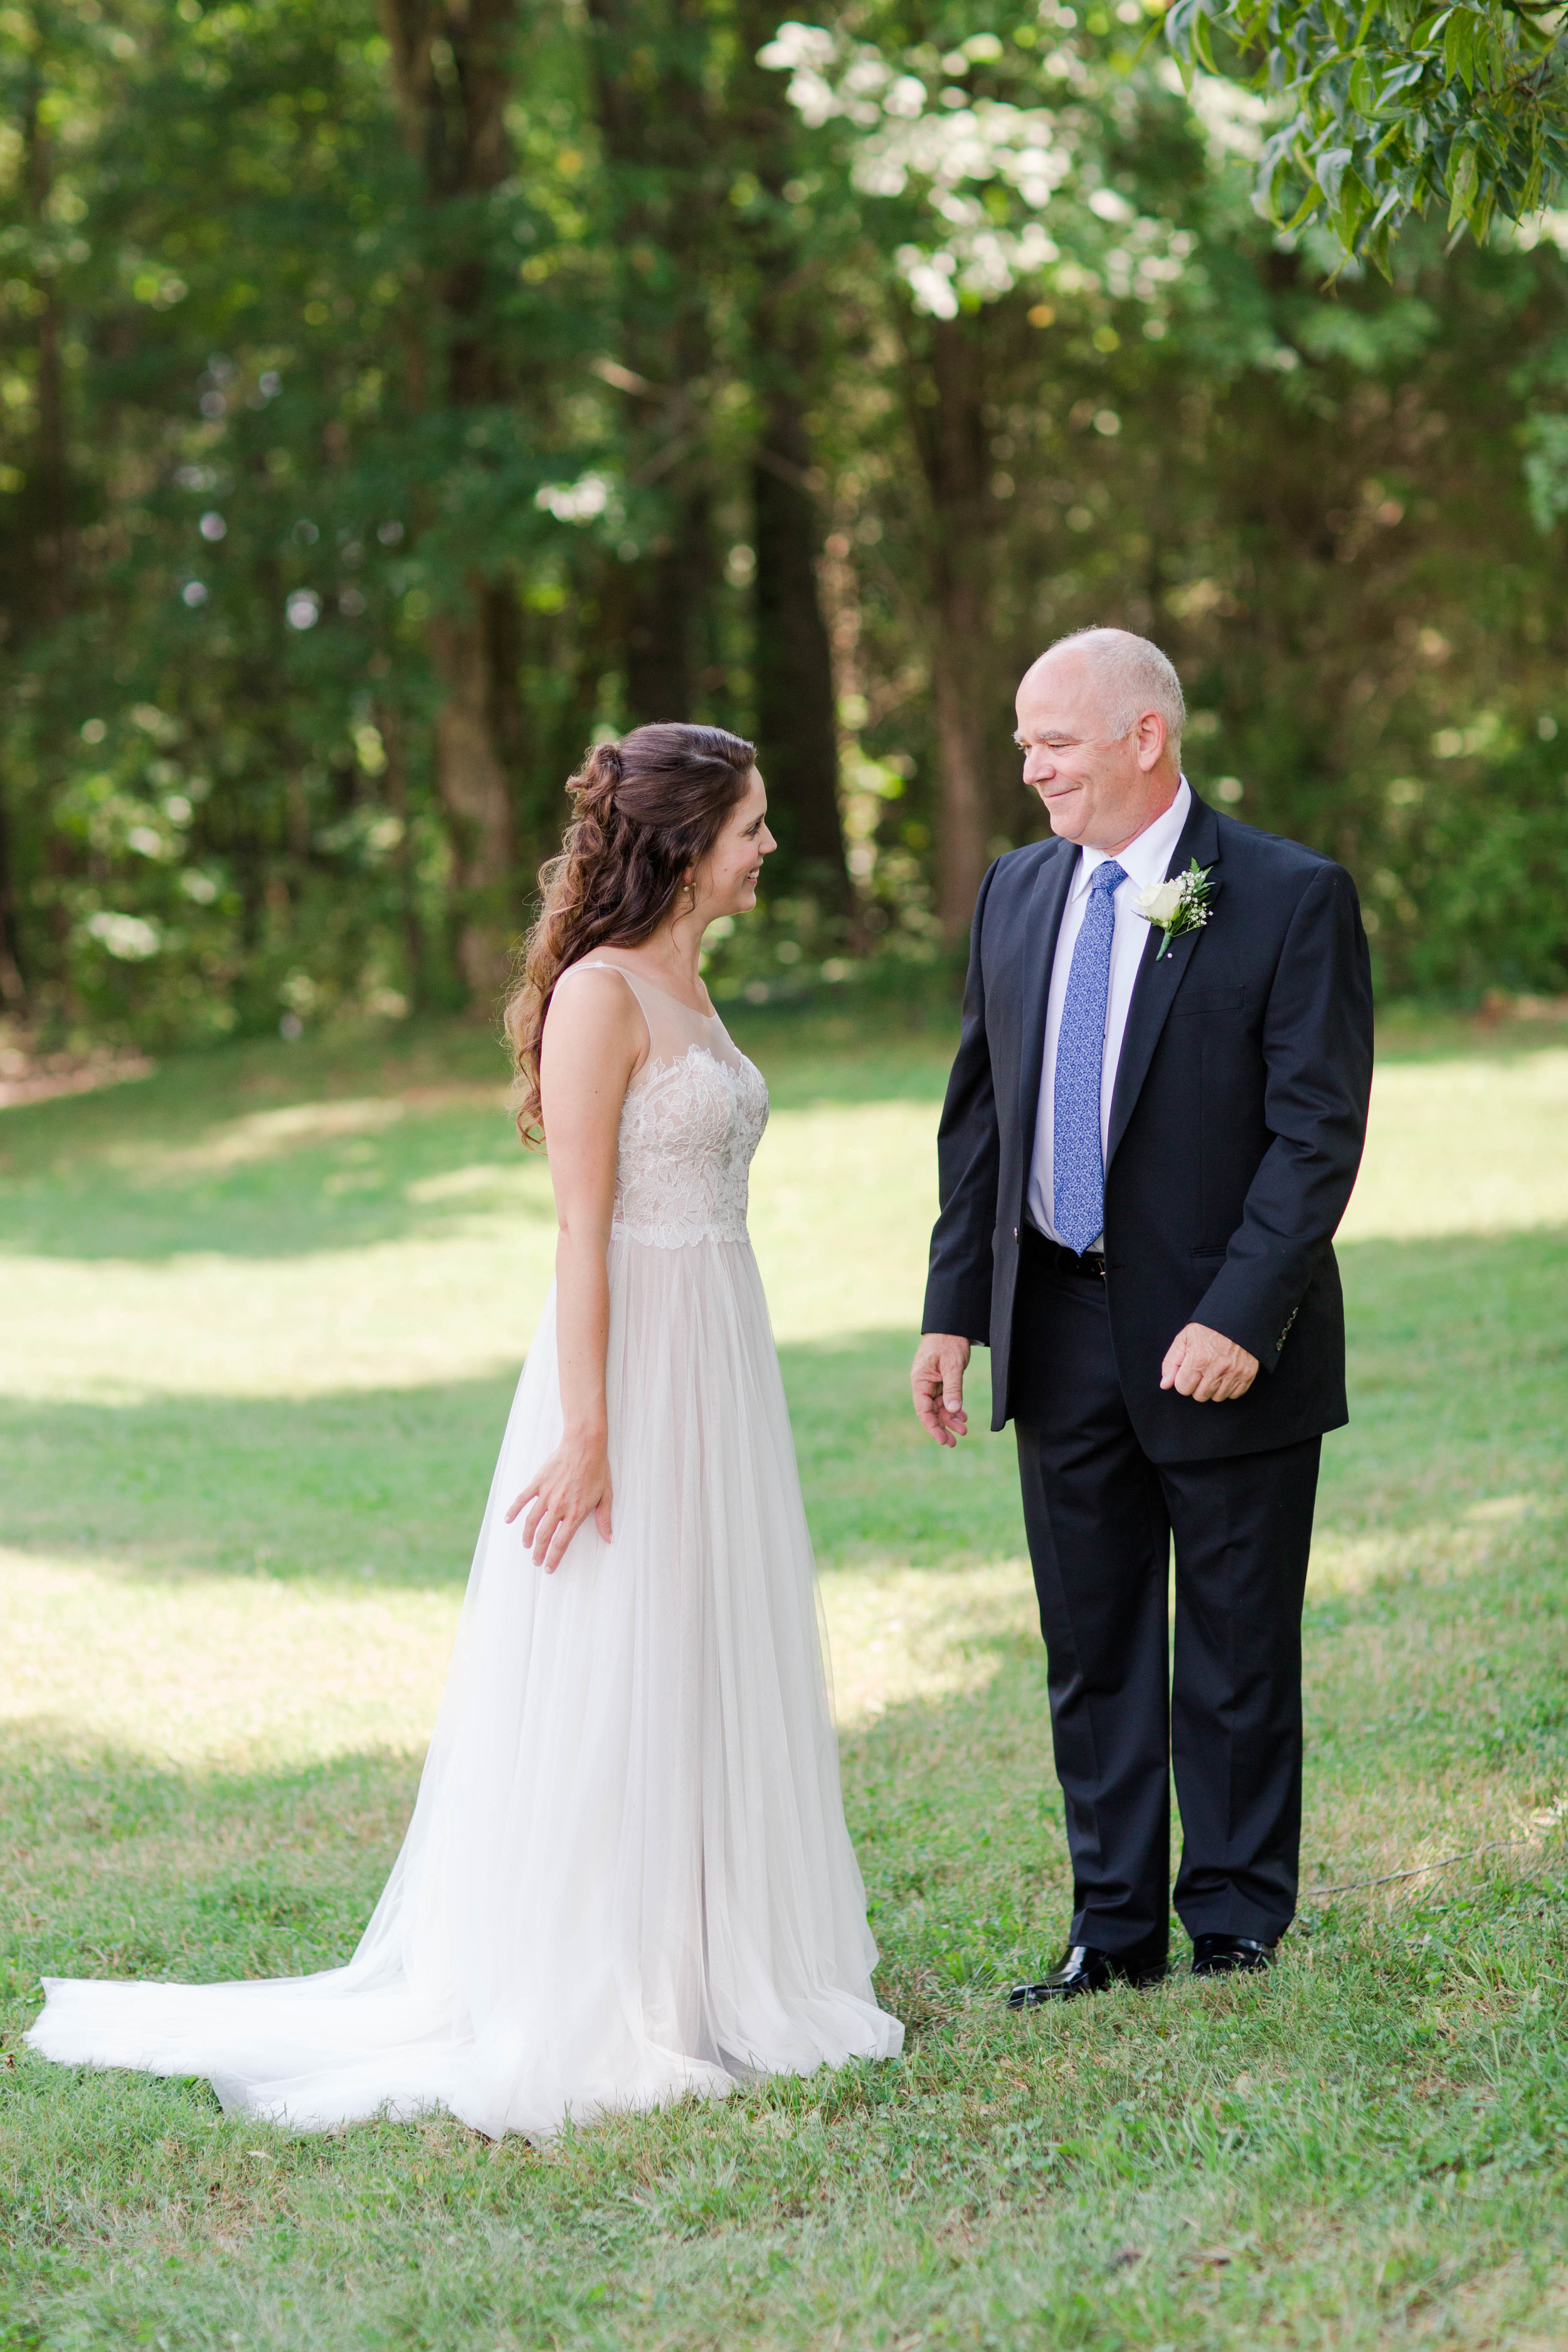 Amato_Family and Bridal Party_18.jpg